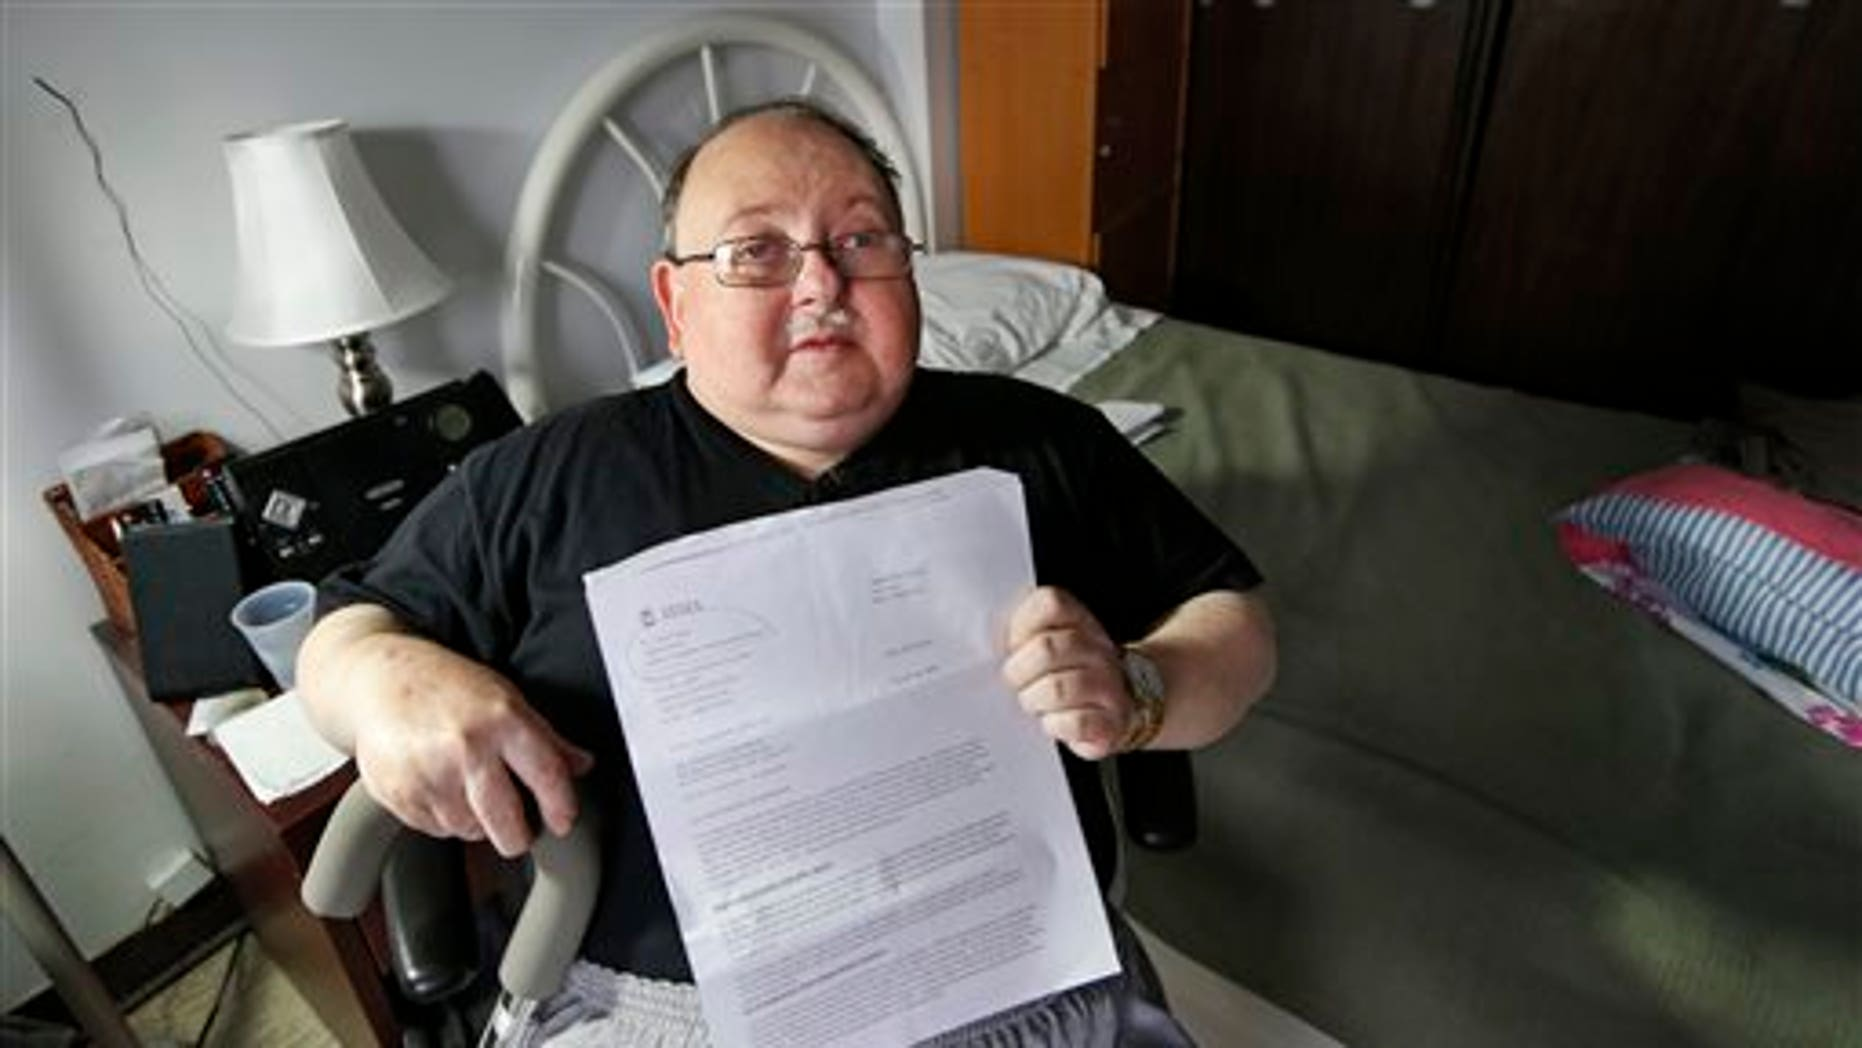 Belle Harbor Manor resident Robert Rosenberg, 61, who suffers from a spinal disability and has other chronic health problems, sits in his room in an assisted living facility in New York, Thursday, Nov. 6, 2014, where he and elderly, poor and disabled residents endured four months of misery after Superstorm Sandy flooded the center, located on New York's vulnerable Rockaway peninsula. Rosenberg holds a letter from the Federal Emergency Management Agency (FEMA) asking him to pay back all the federal disaster aid he received after the storm. He is among a dozen residents of Belle Harbor Manor who have been asked to return aid money.  (AP Photo/Kathy Willens)